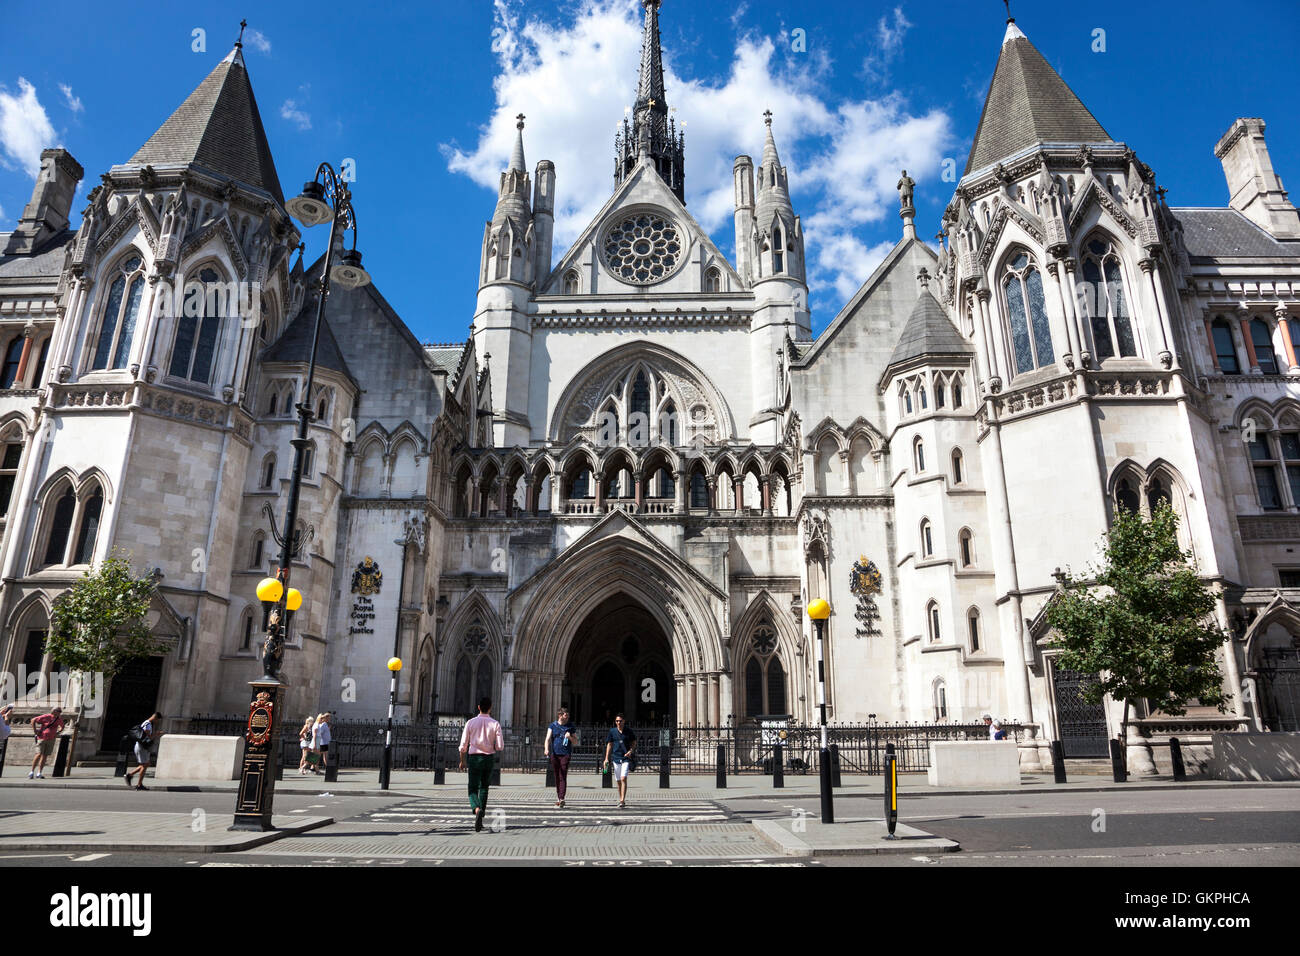 Royal Courts of Justice on Strand, London, UK - Stock Image